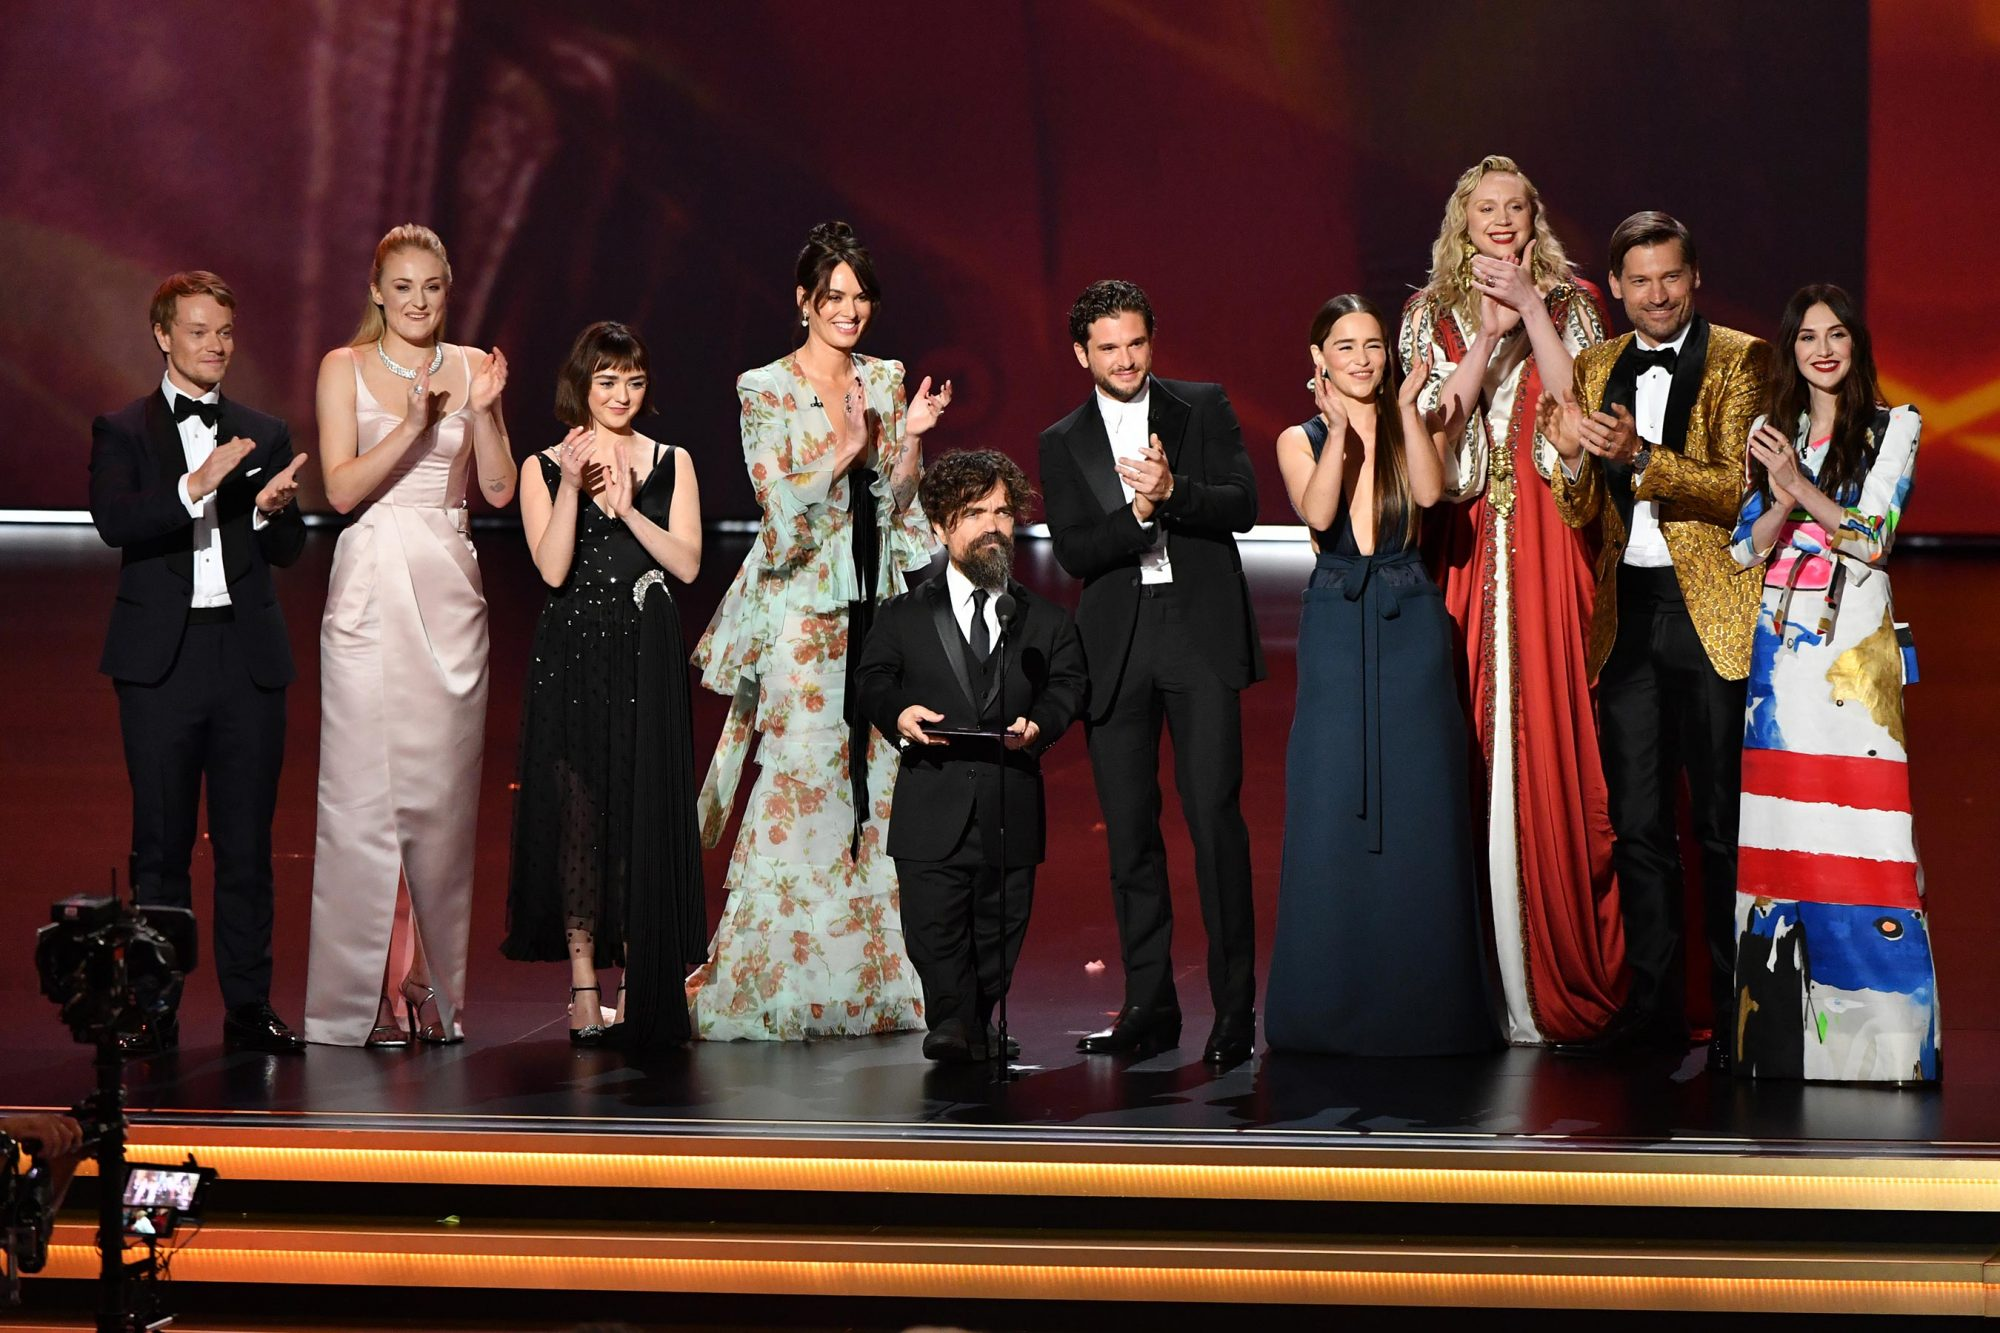 Game of Thrones cast bids the Emmys adieu